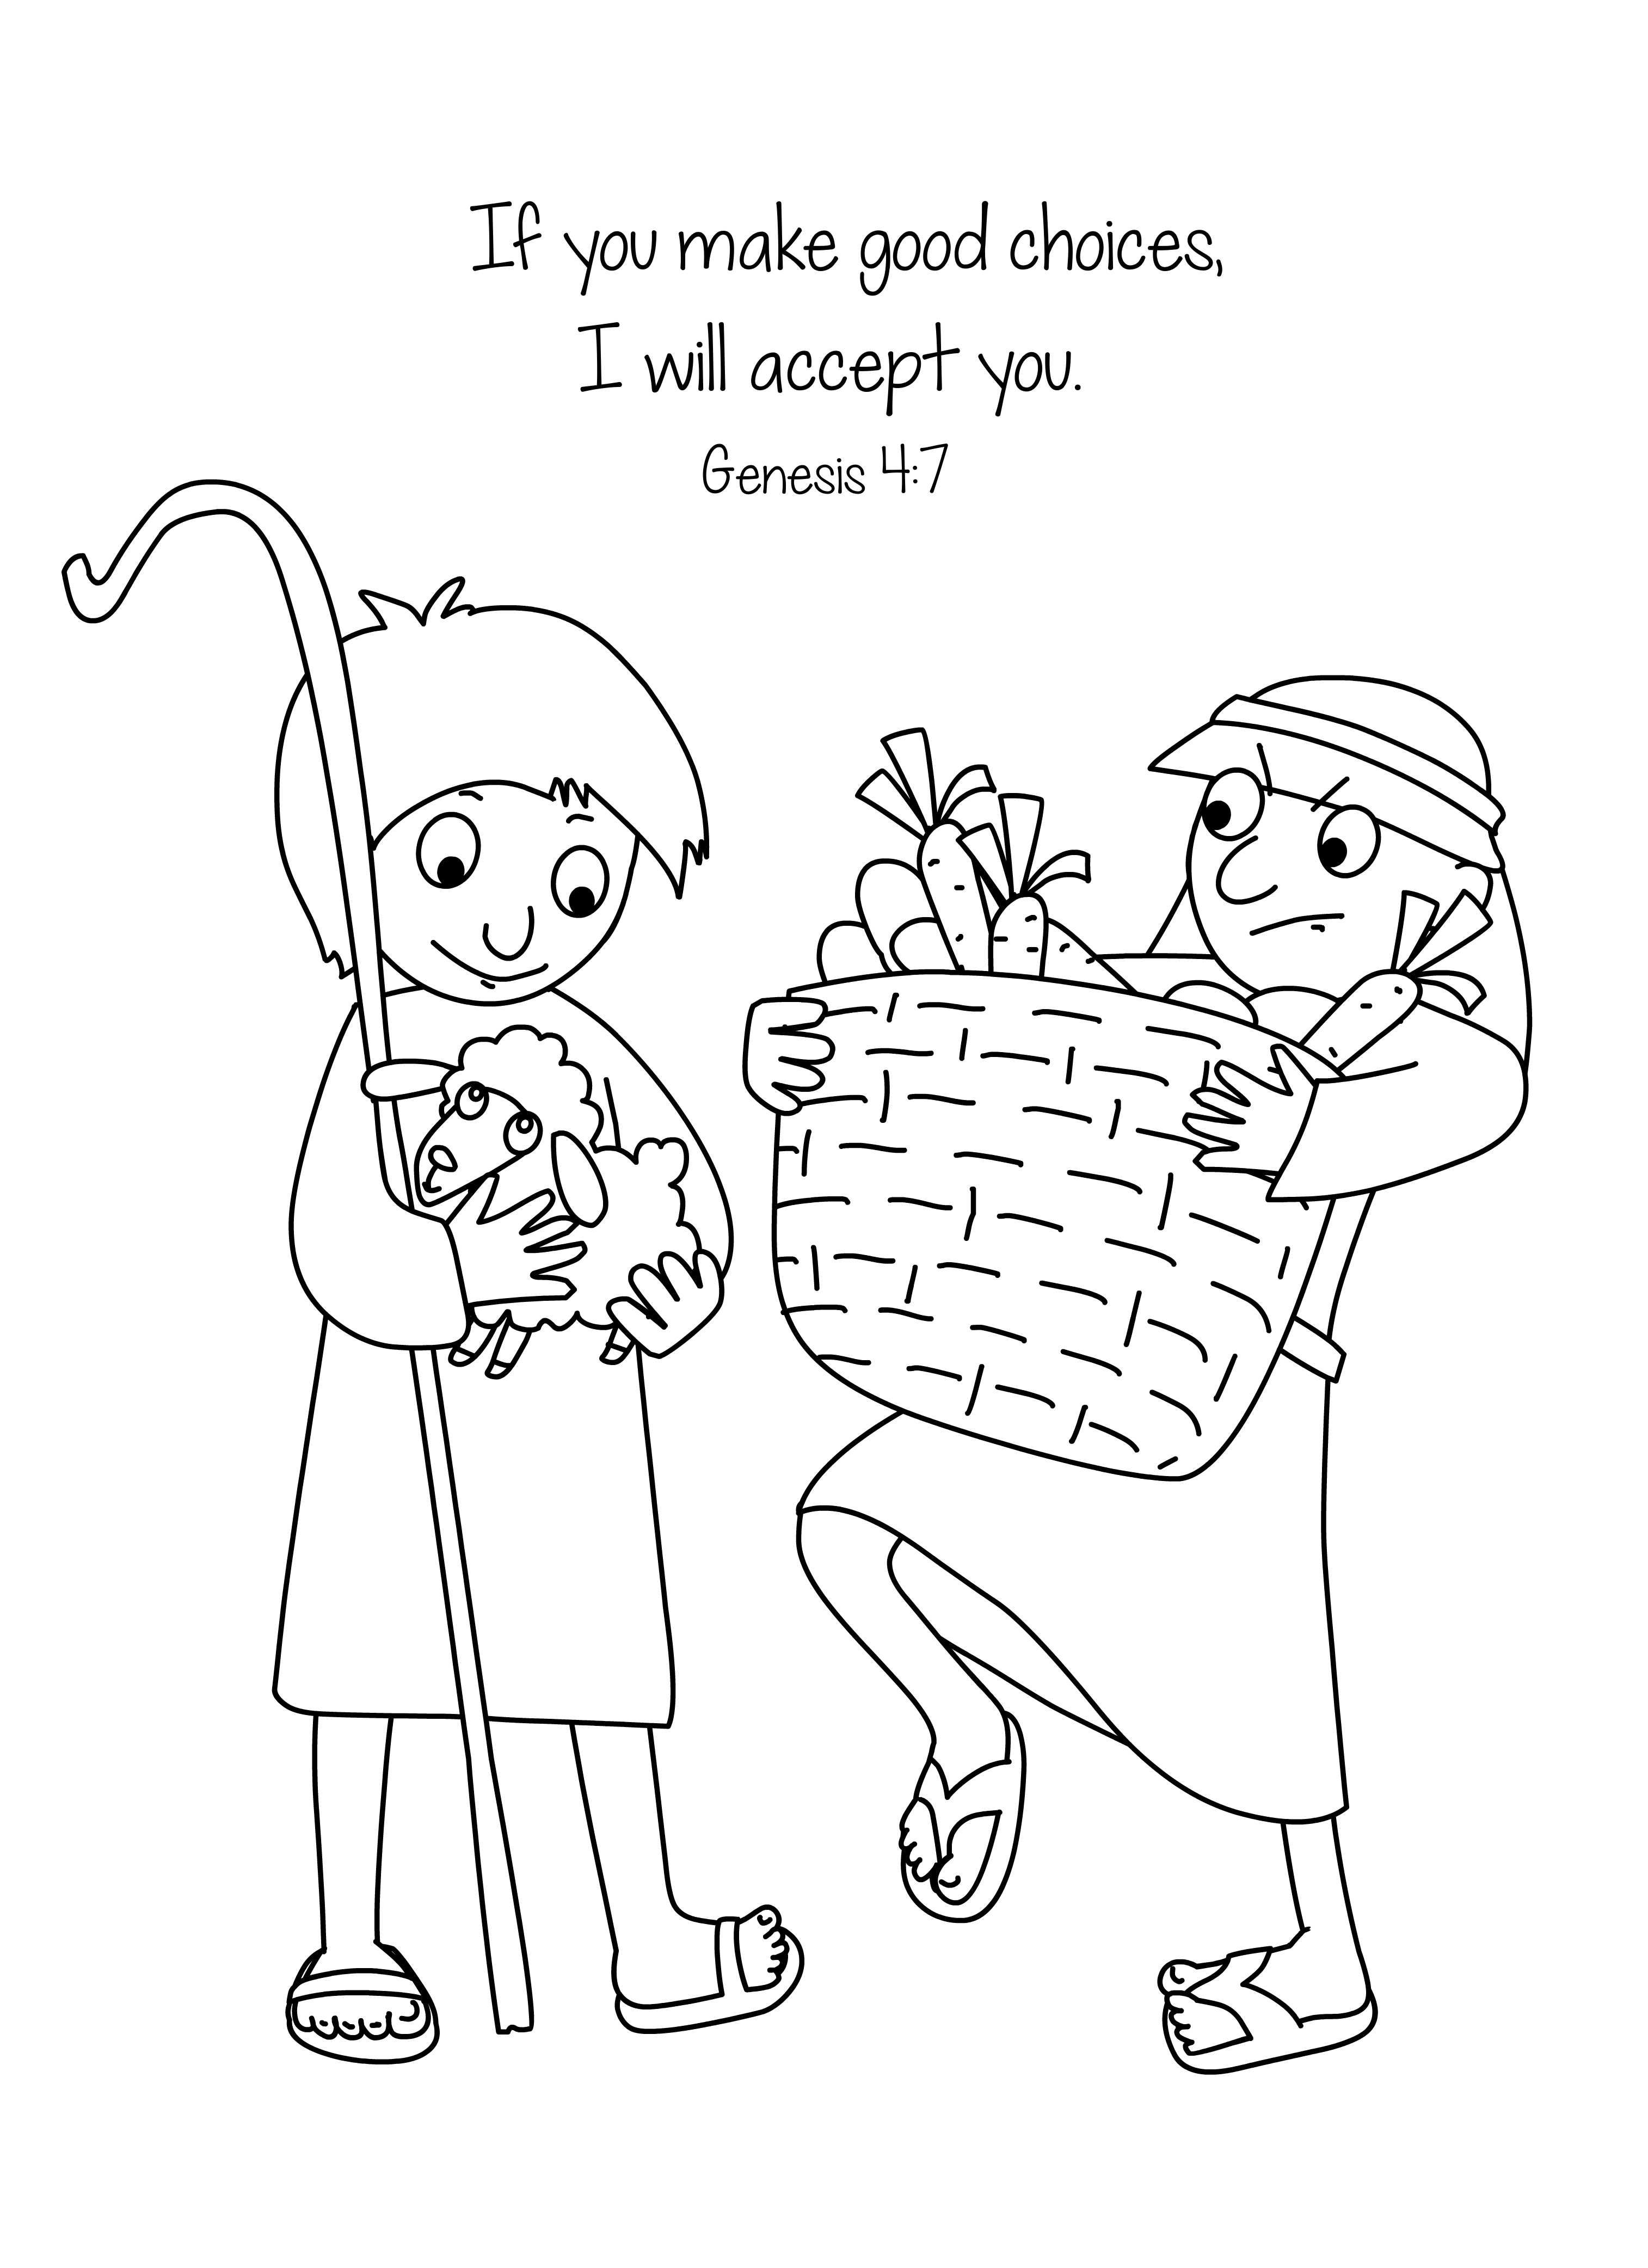 Cain and Abel Bible Coloring Page Free Download   Big part ...   bible coloring pages for preschoolers